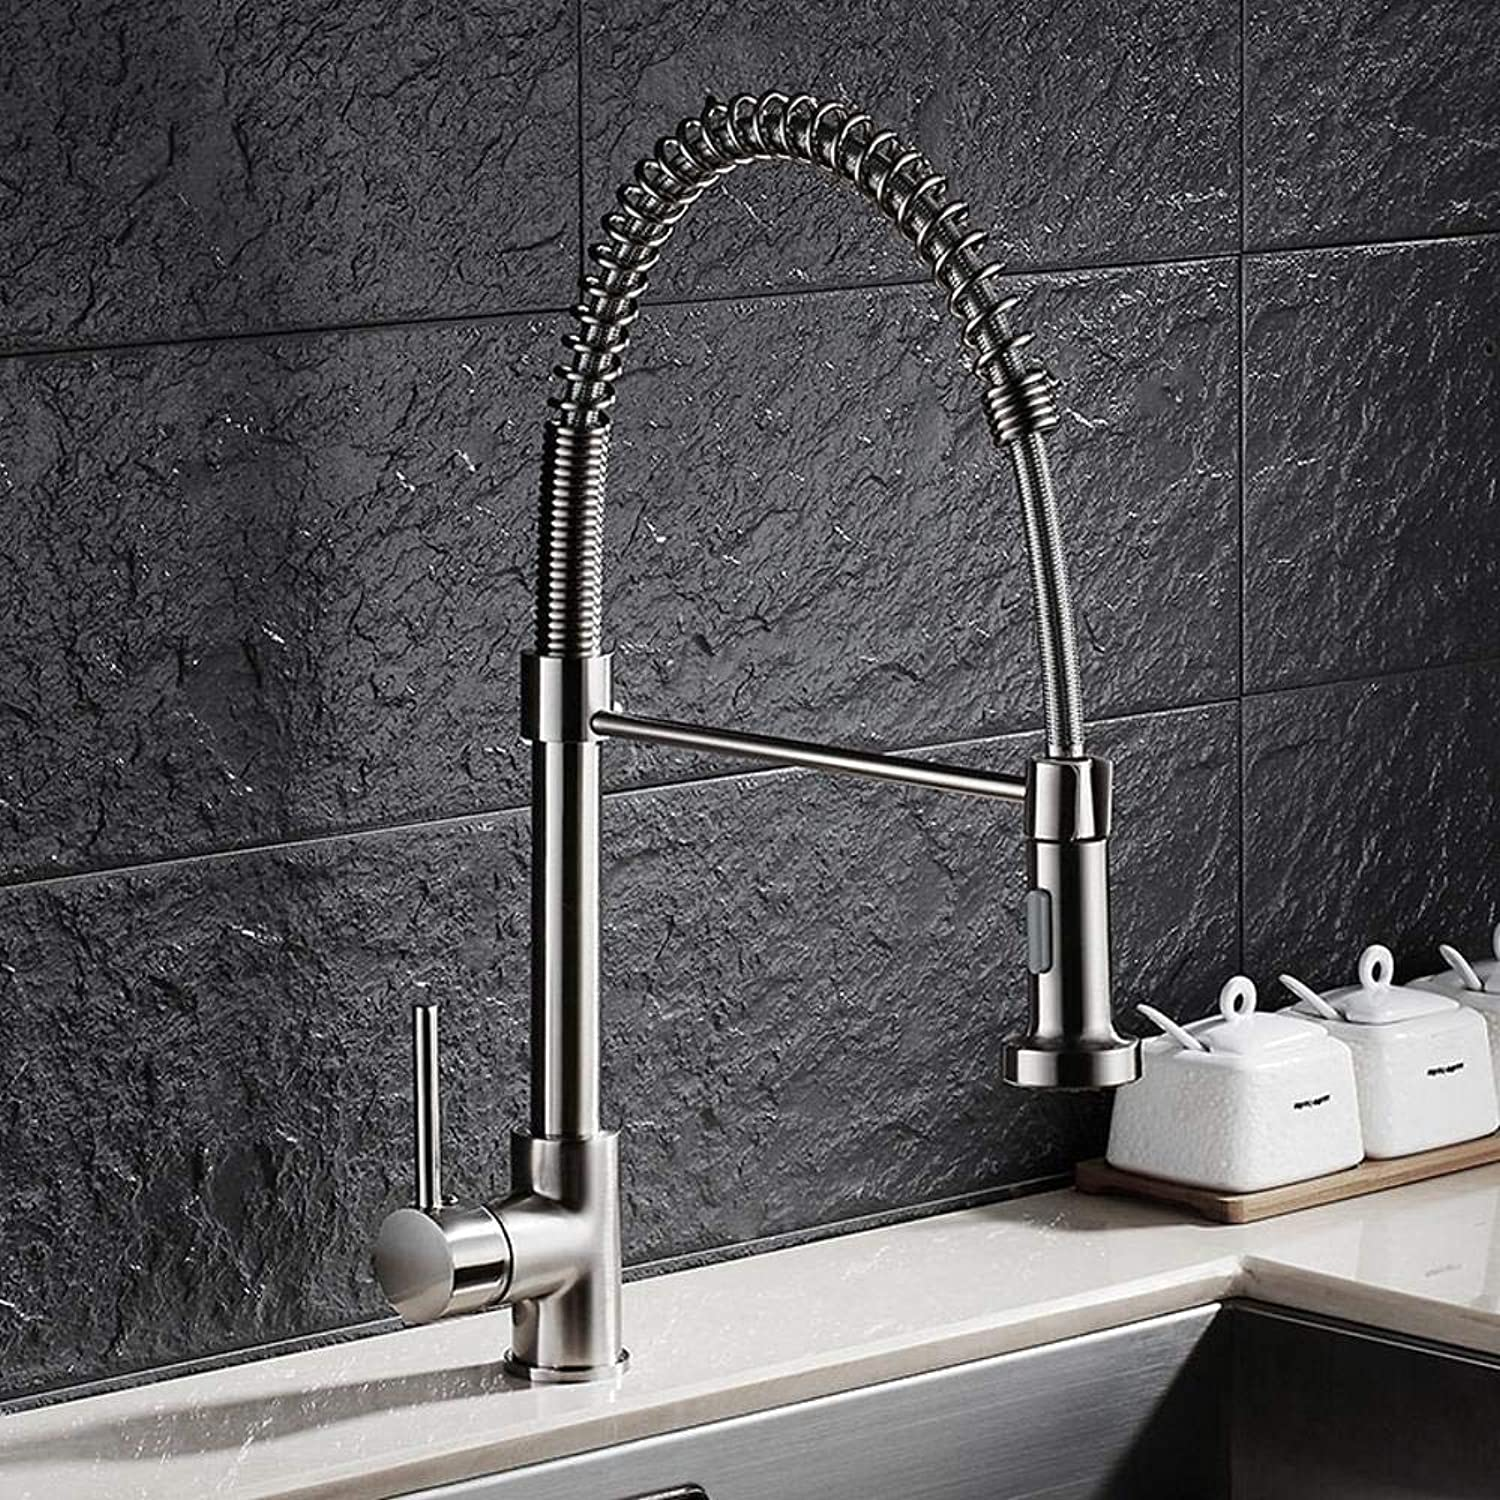 Lxj Tap drawing pull Spring single lever single hole redatable faucet kitchen sink faucet